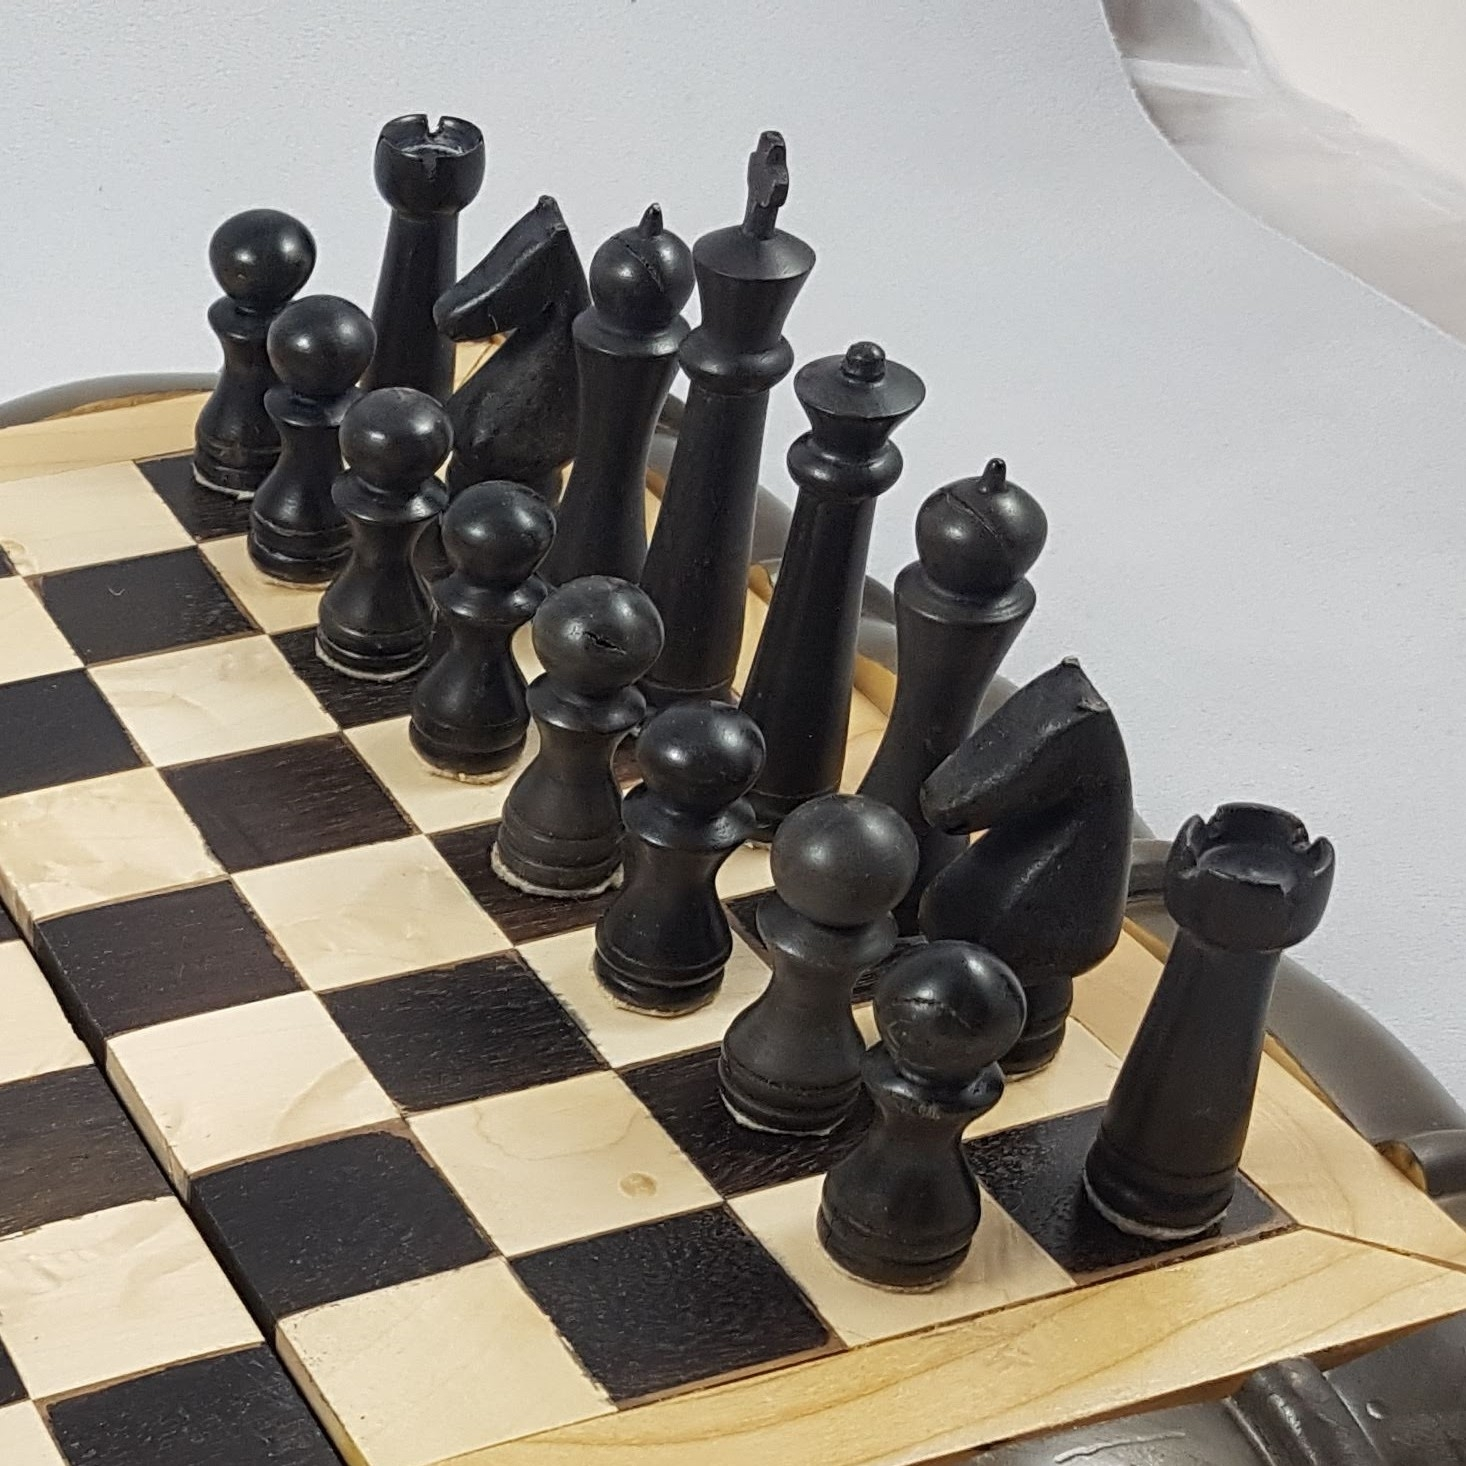 Dark chess pieces